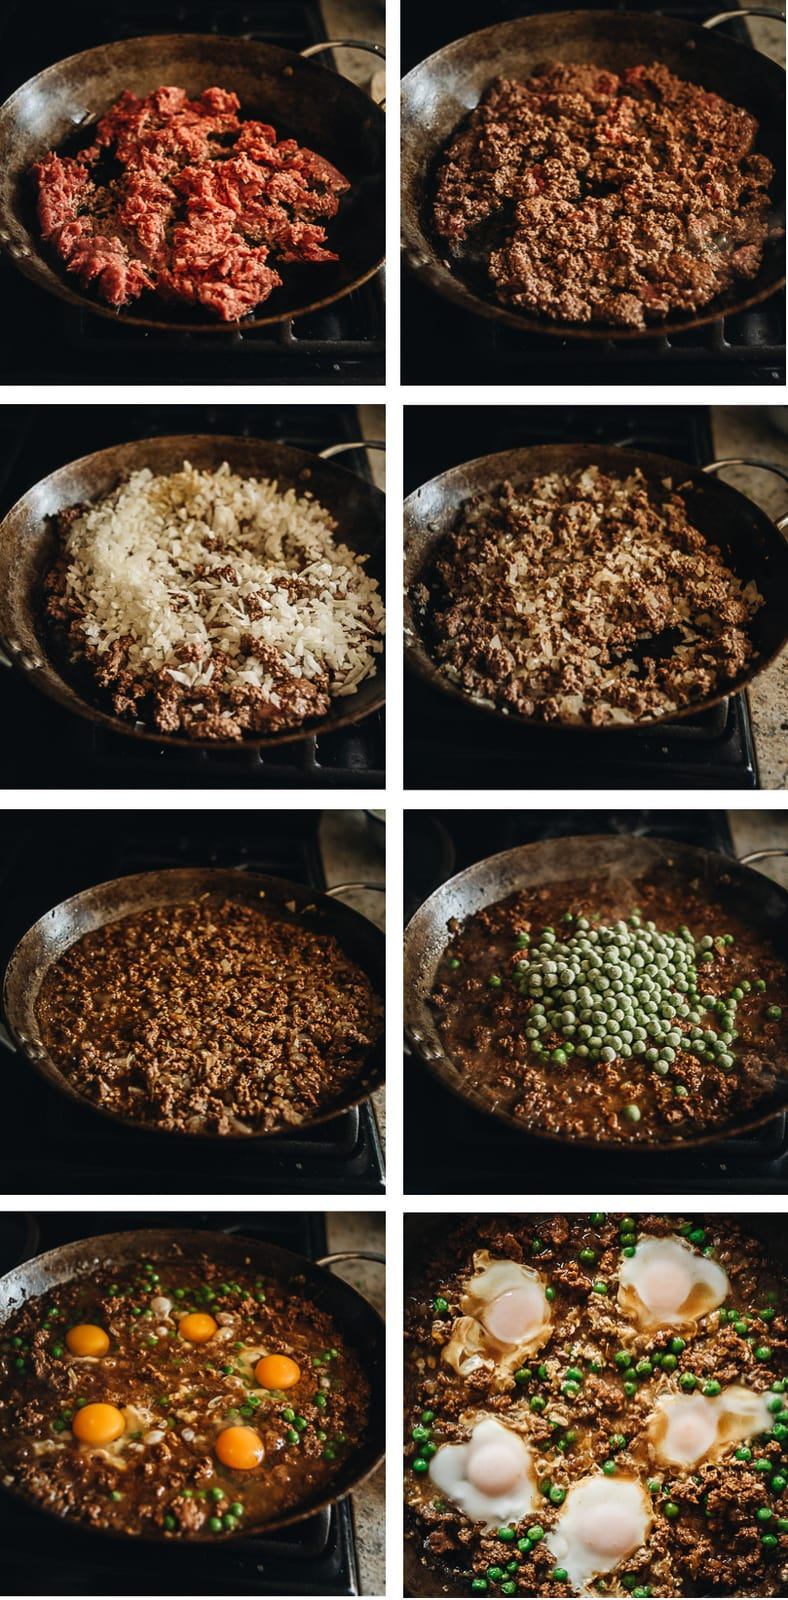 Minced beef bowl cooking step-by-step